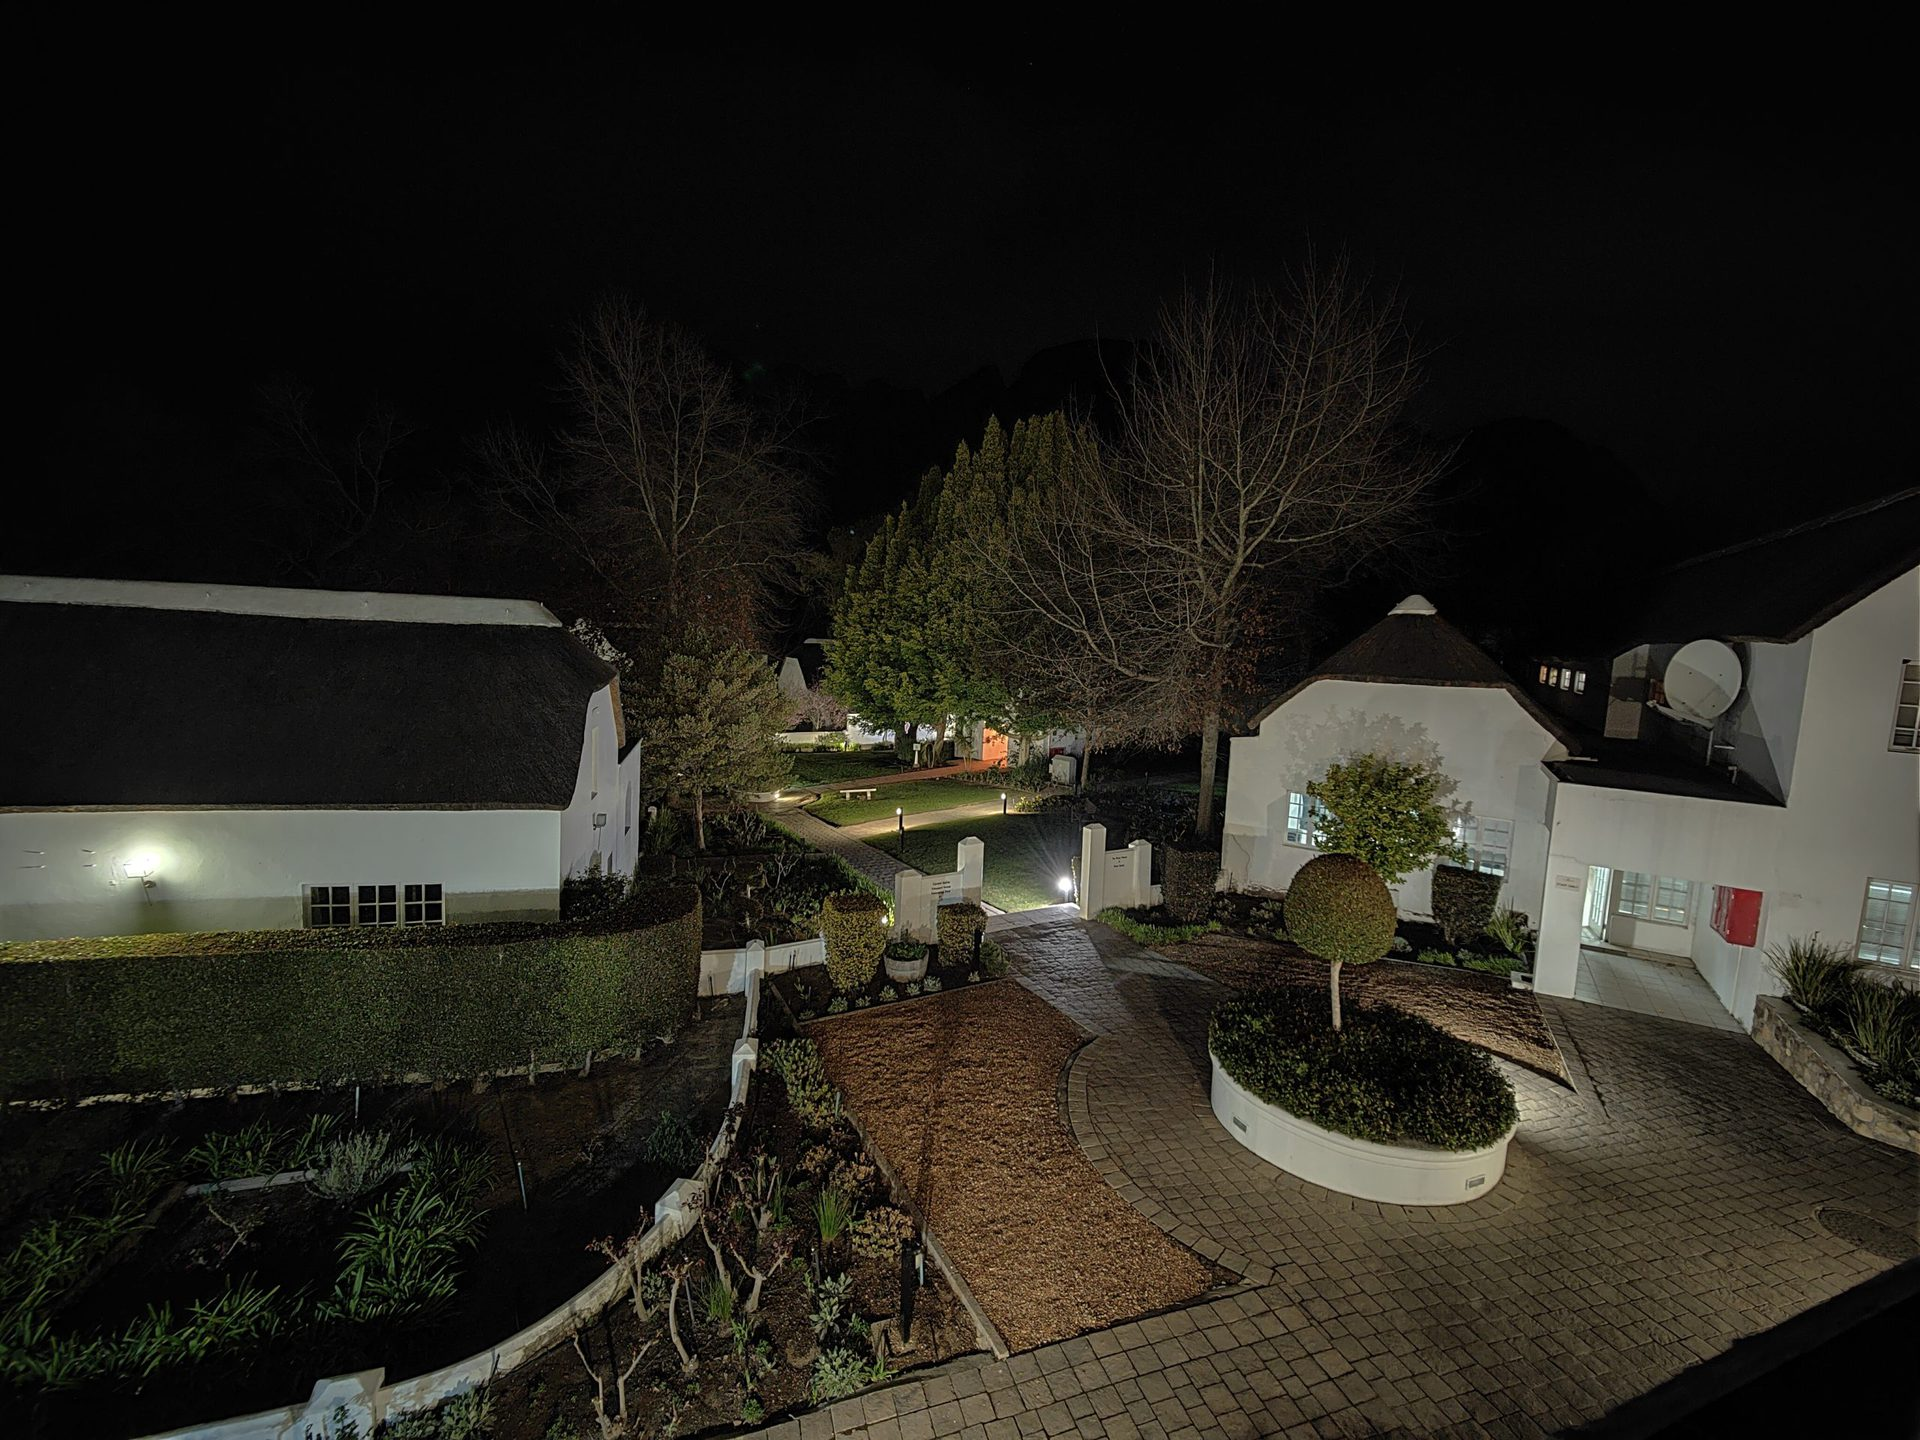 A sample from the ultra-wide camera in low light.